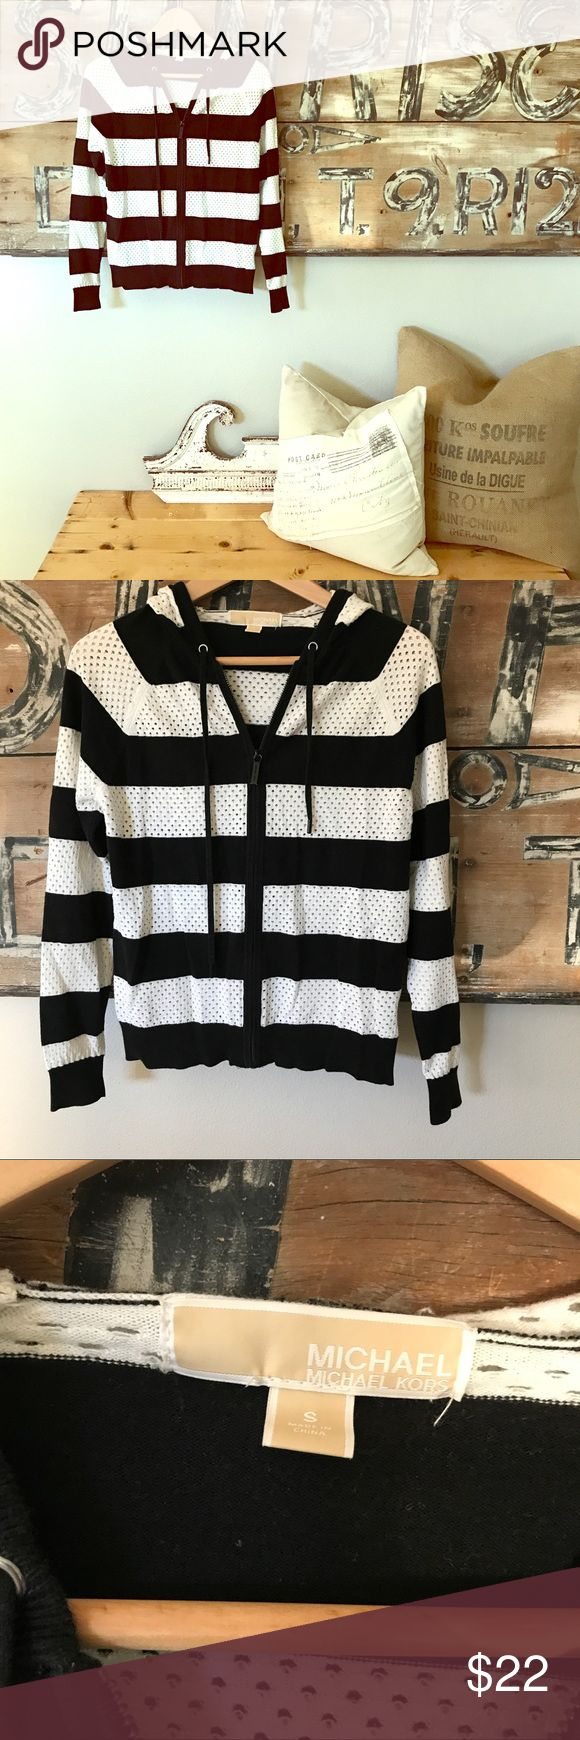 Micheal Kors striped zip up hoodie Great condition. Light weight MICHAEL Michael Kors Sweaters Cardigans